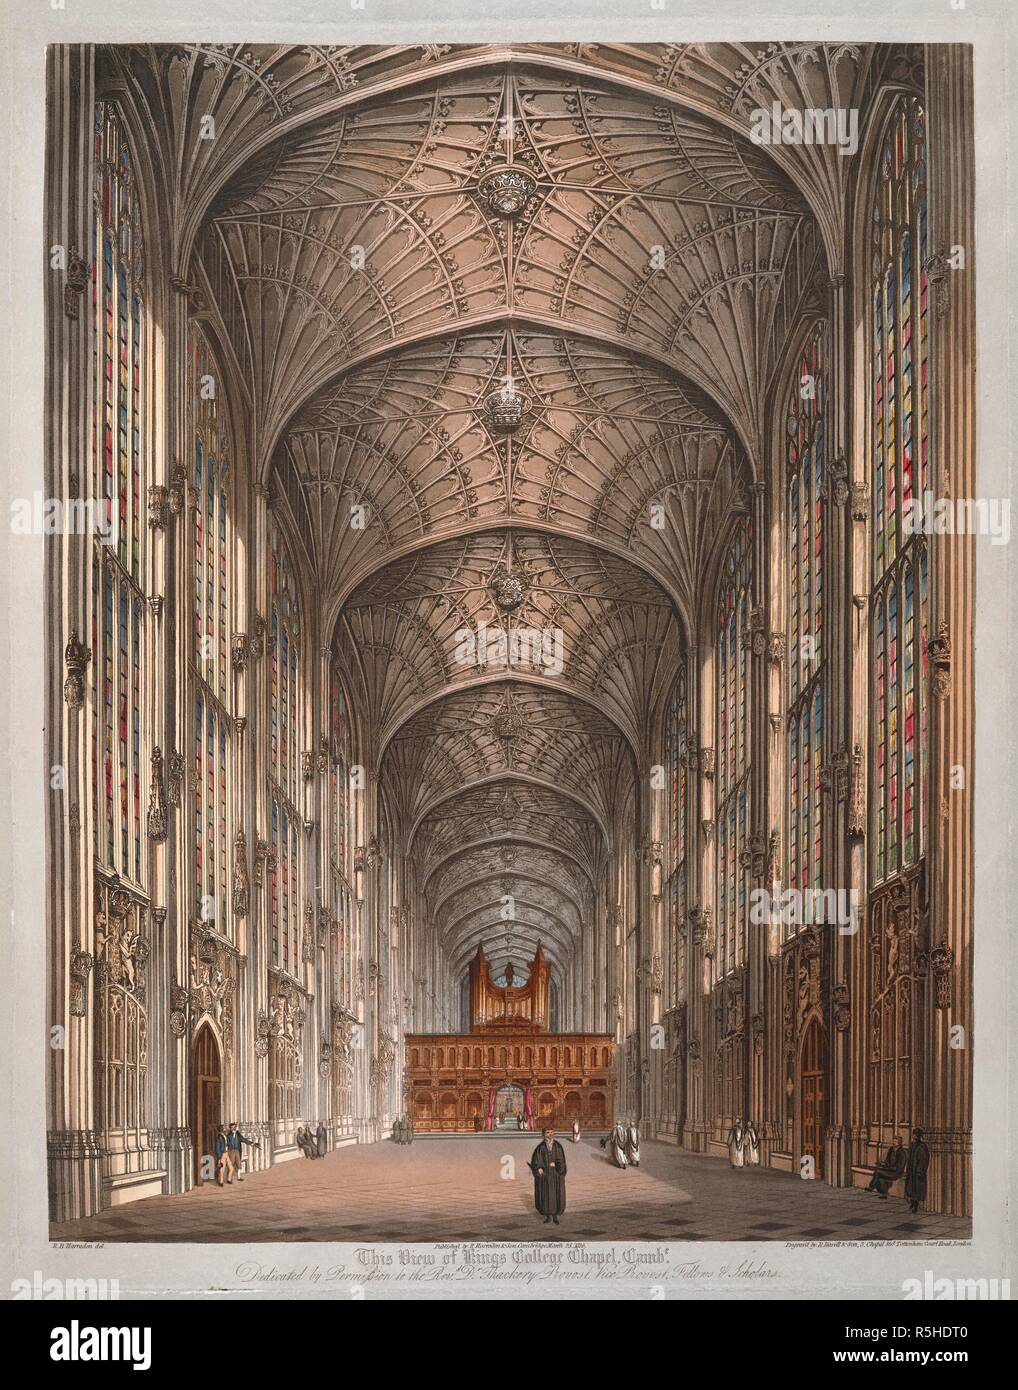 Scholars and choristers standing inside King's College Chapel; stained glass windows on either side; the fan-vaulted ceiling; the organ in the distance. This View of Kings College Chapel Cambe. [Cambridge] : Published by R. Harraden & Son, Cambridge, March 25 1816. Aquatint and etching with hand-colouring. Source: Maps K.Top.8.58.o. Language: English. Author: Harraden, Richard. Stock Photo